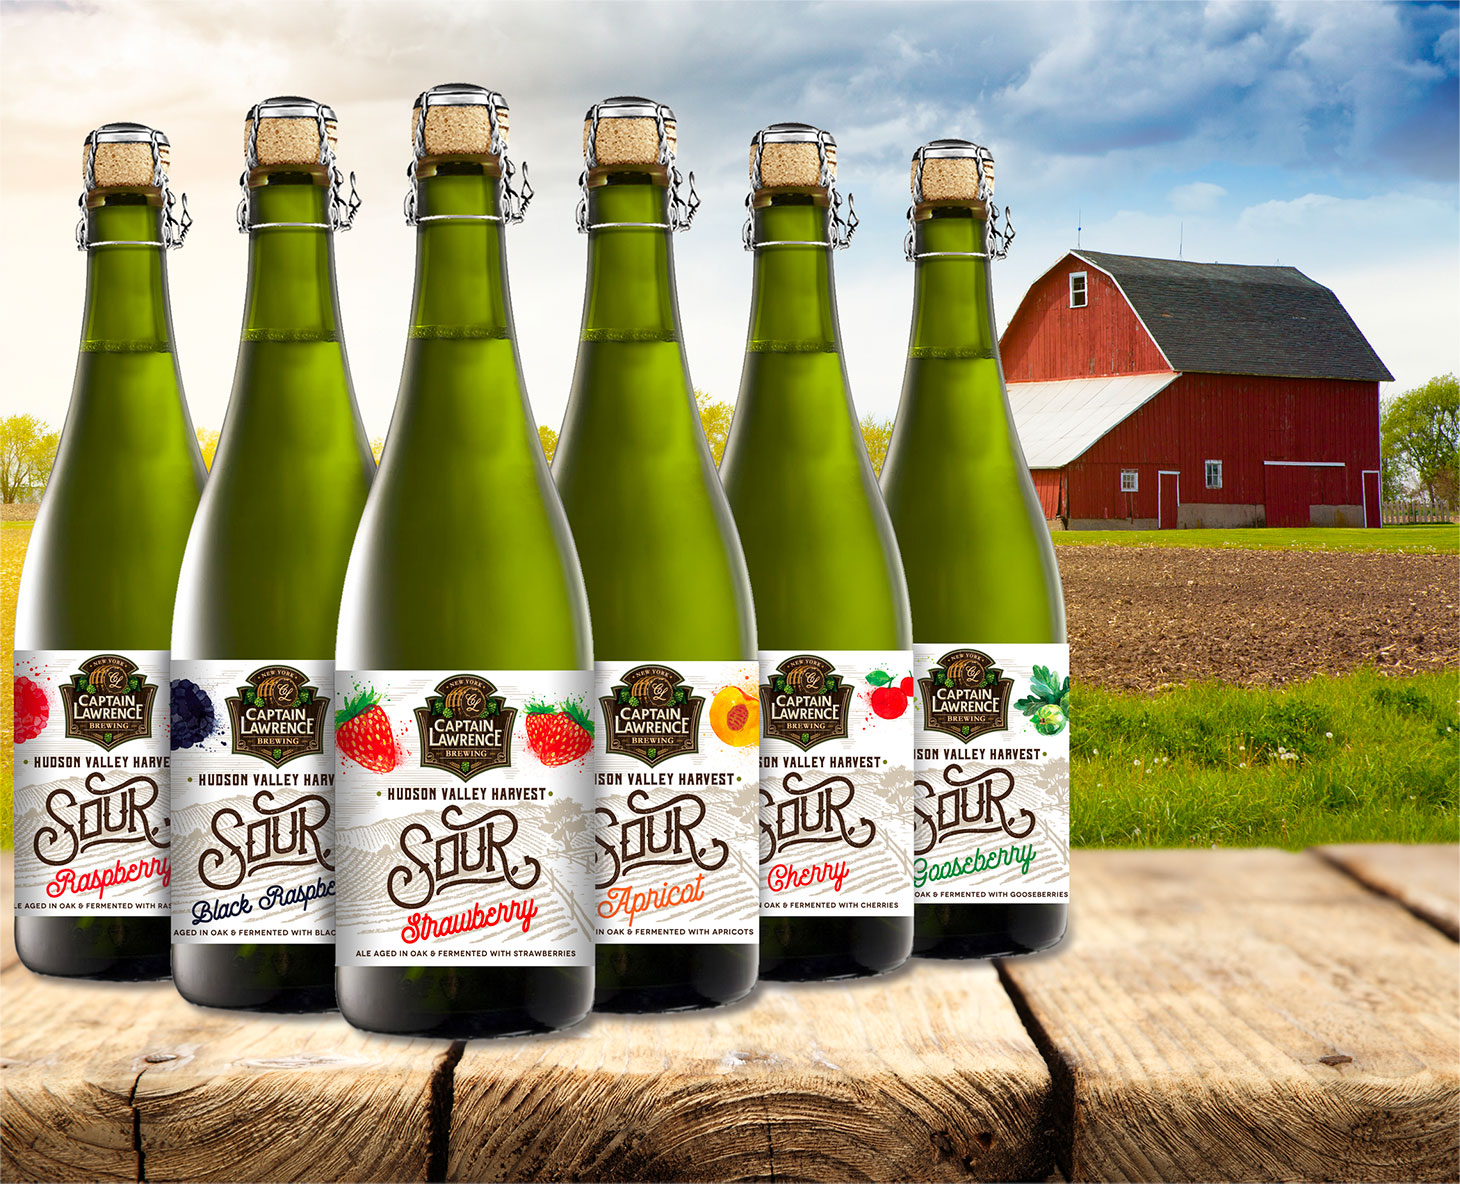 Captain Lawrence Brewing's new Hudson Valley Harvest line